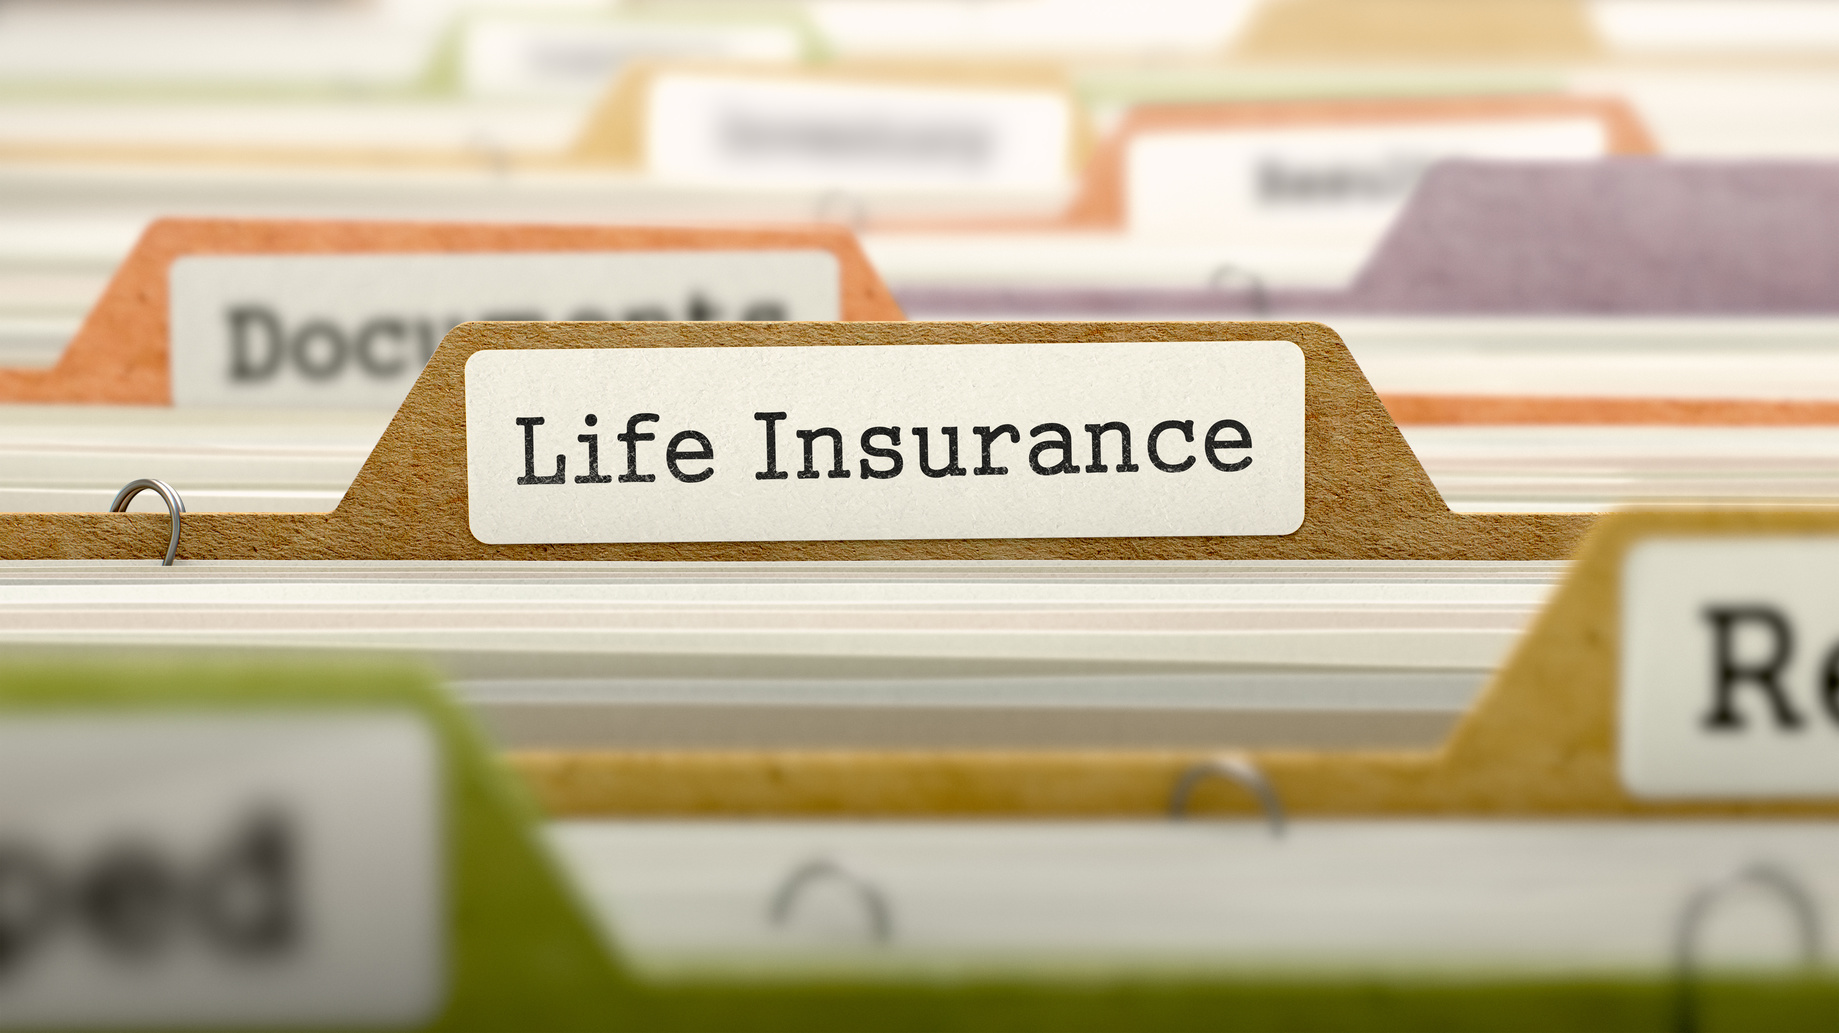 Life Insurance What's Your Excuse? Why People Avoid Life Insurance and Why They Shouldn't